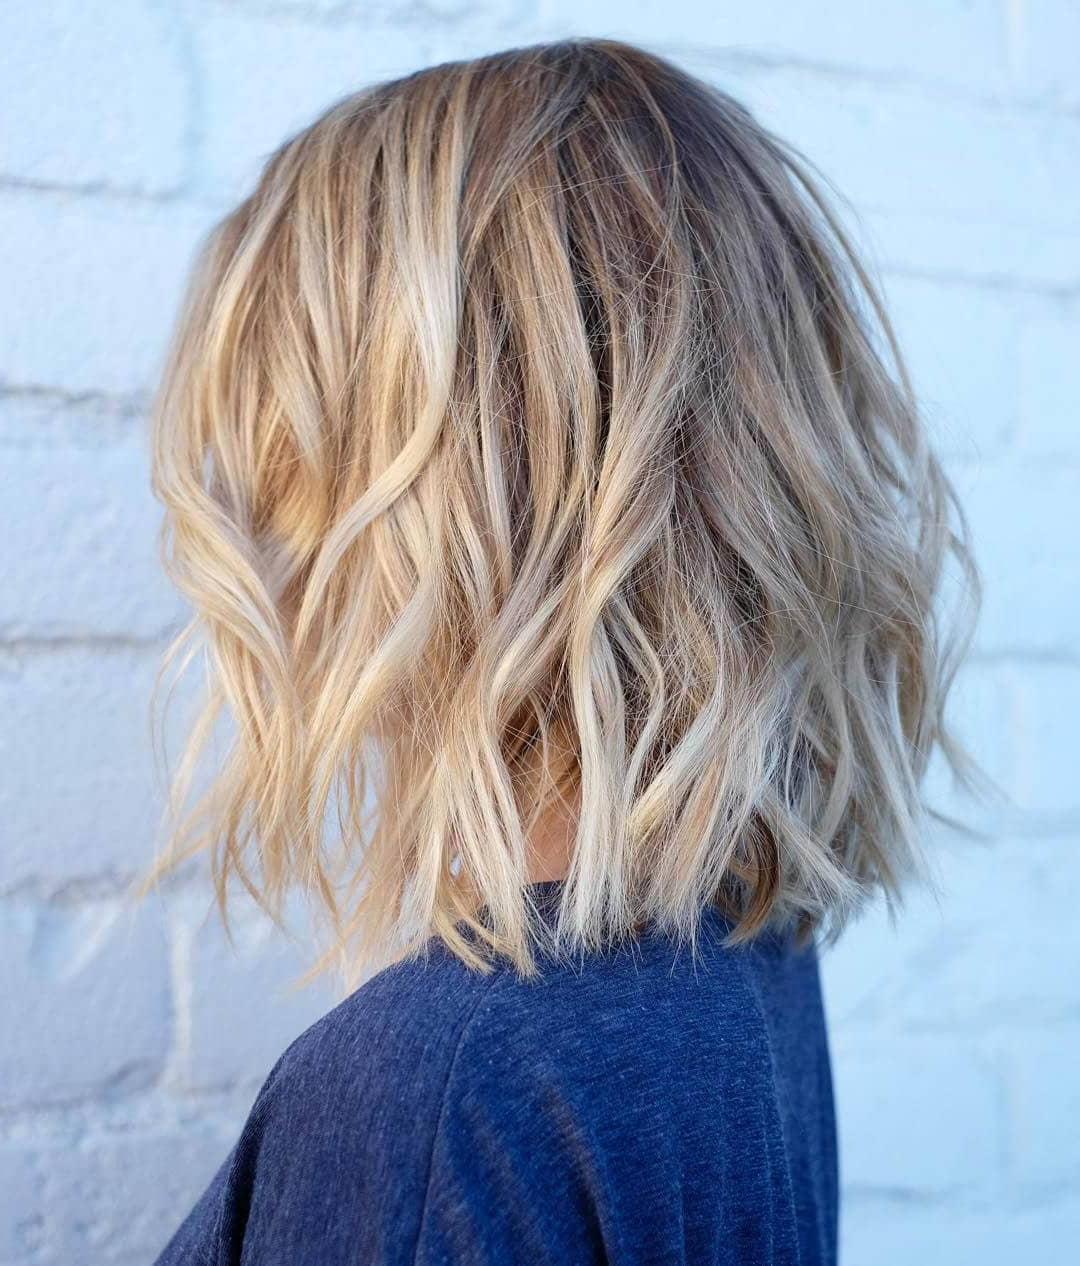 50 Fresh Short Blonde Hair Ideas To Update Your Style In 2018 With Honey Blonde Layered Bob Hairstyles With Short Back (View 8 of 20)